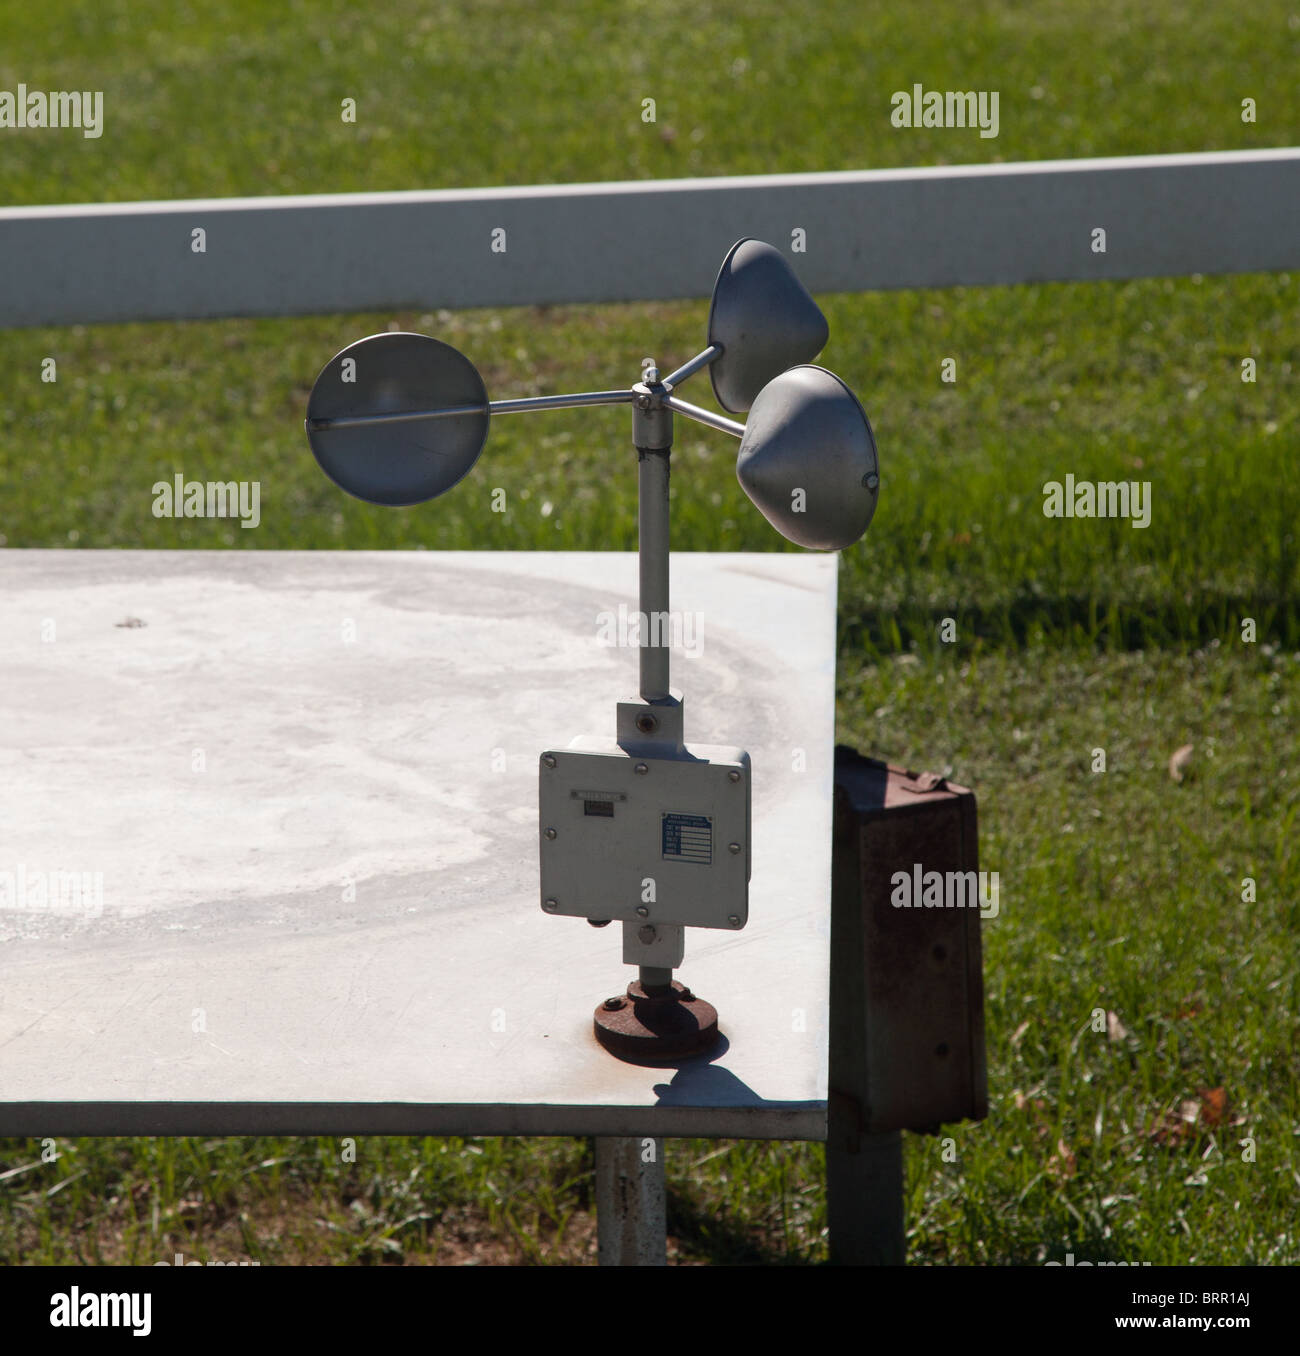 Equipment for measuring wind speed - Stock Image